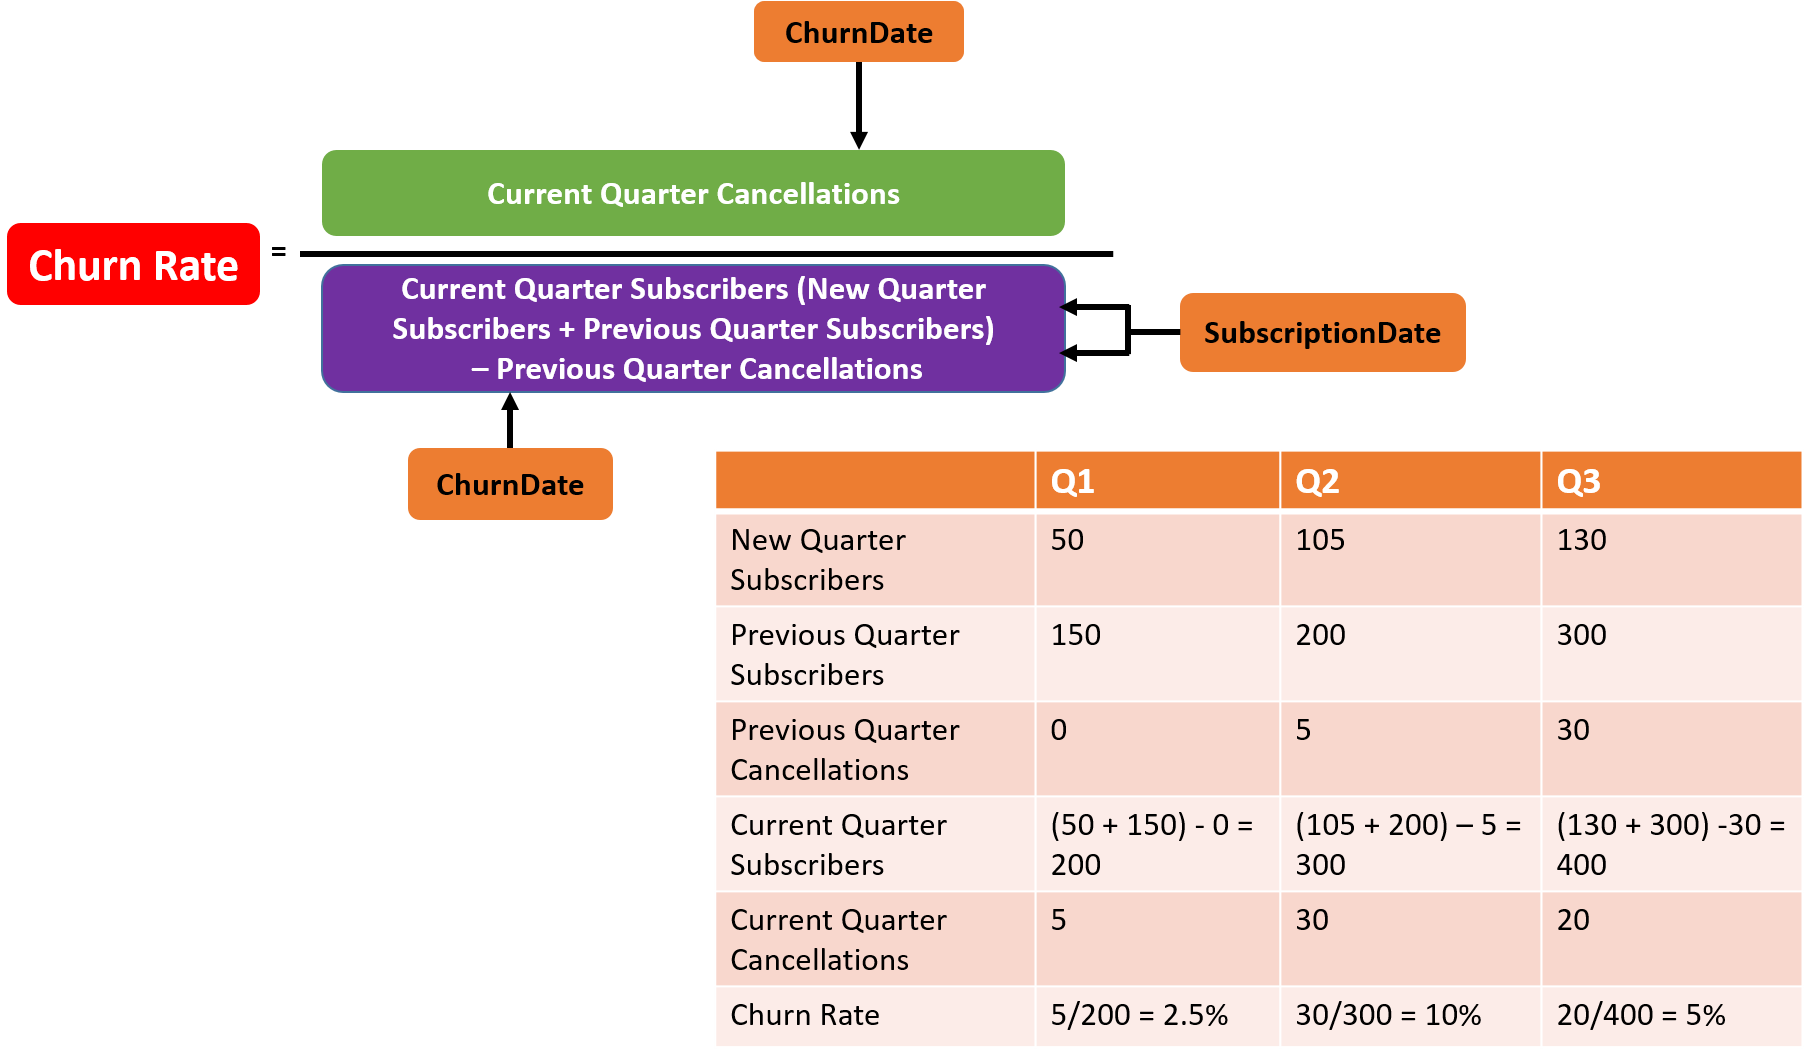 Beattie Media's churn rate equation, where Churn Rate equals Current Quarter Cancellations (indicated by the ChurnDate field) divided by Current Quarter Subscribers (which is new quarter subscribers plus previous quarter subscribers minus previous quarter cancellations)